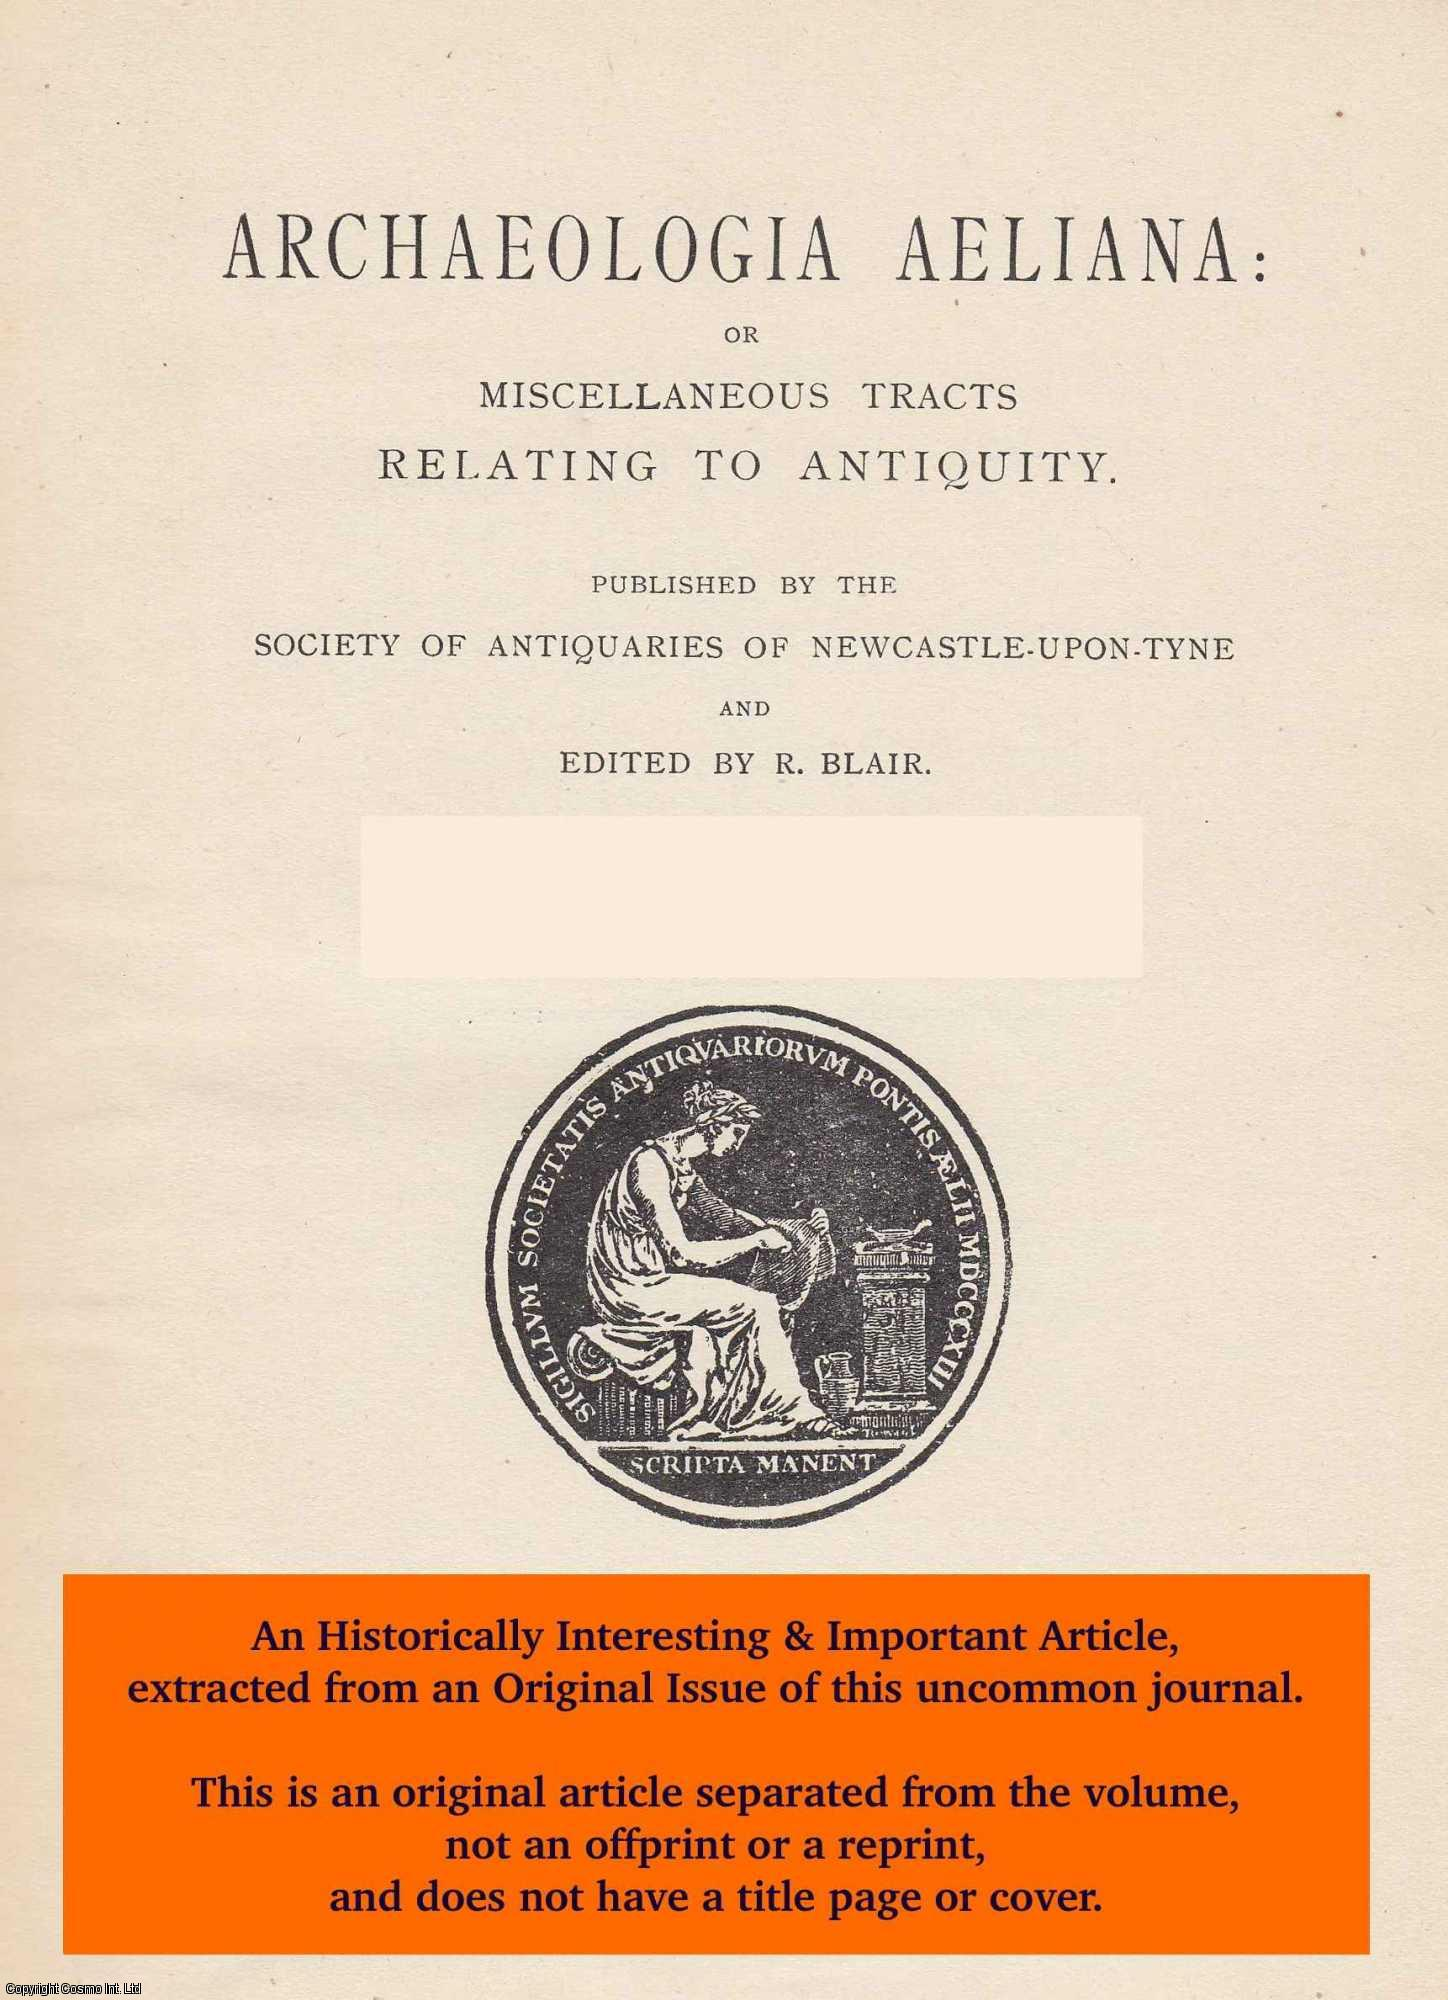 BLAIR, C. H. HUNTER - The Renaissance Heraldry of Northumberland. Part II. An original article from The Archaeologia Aeliana: or Miscellaneous Tracts Relating to Antiquity, 1934.